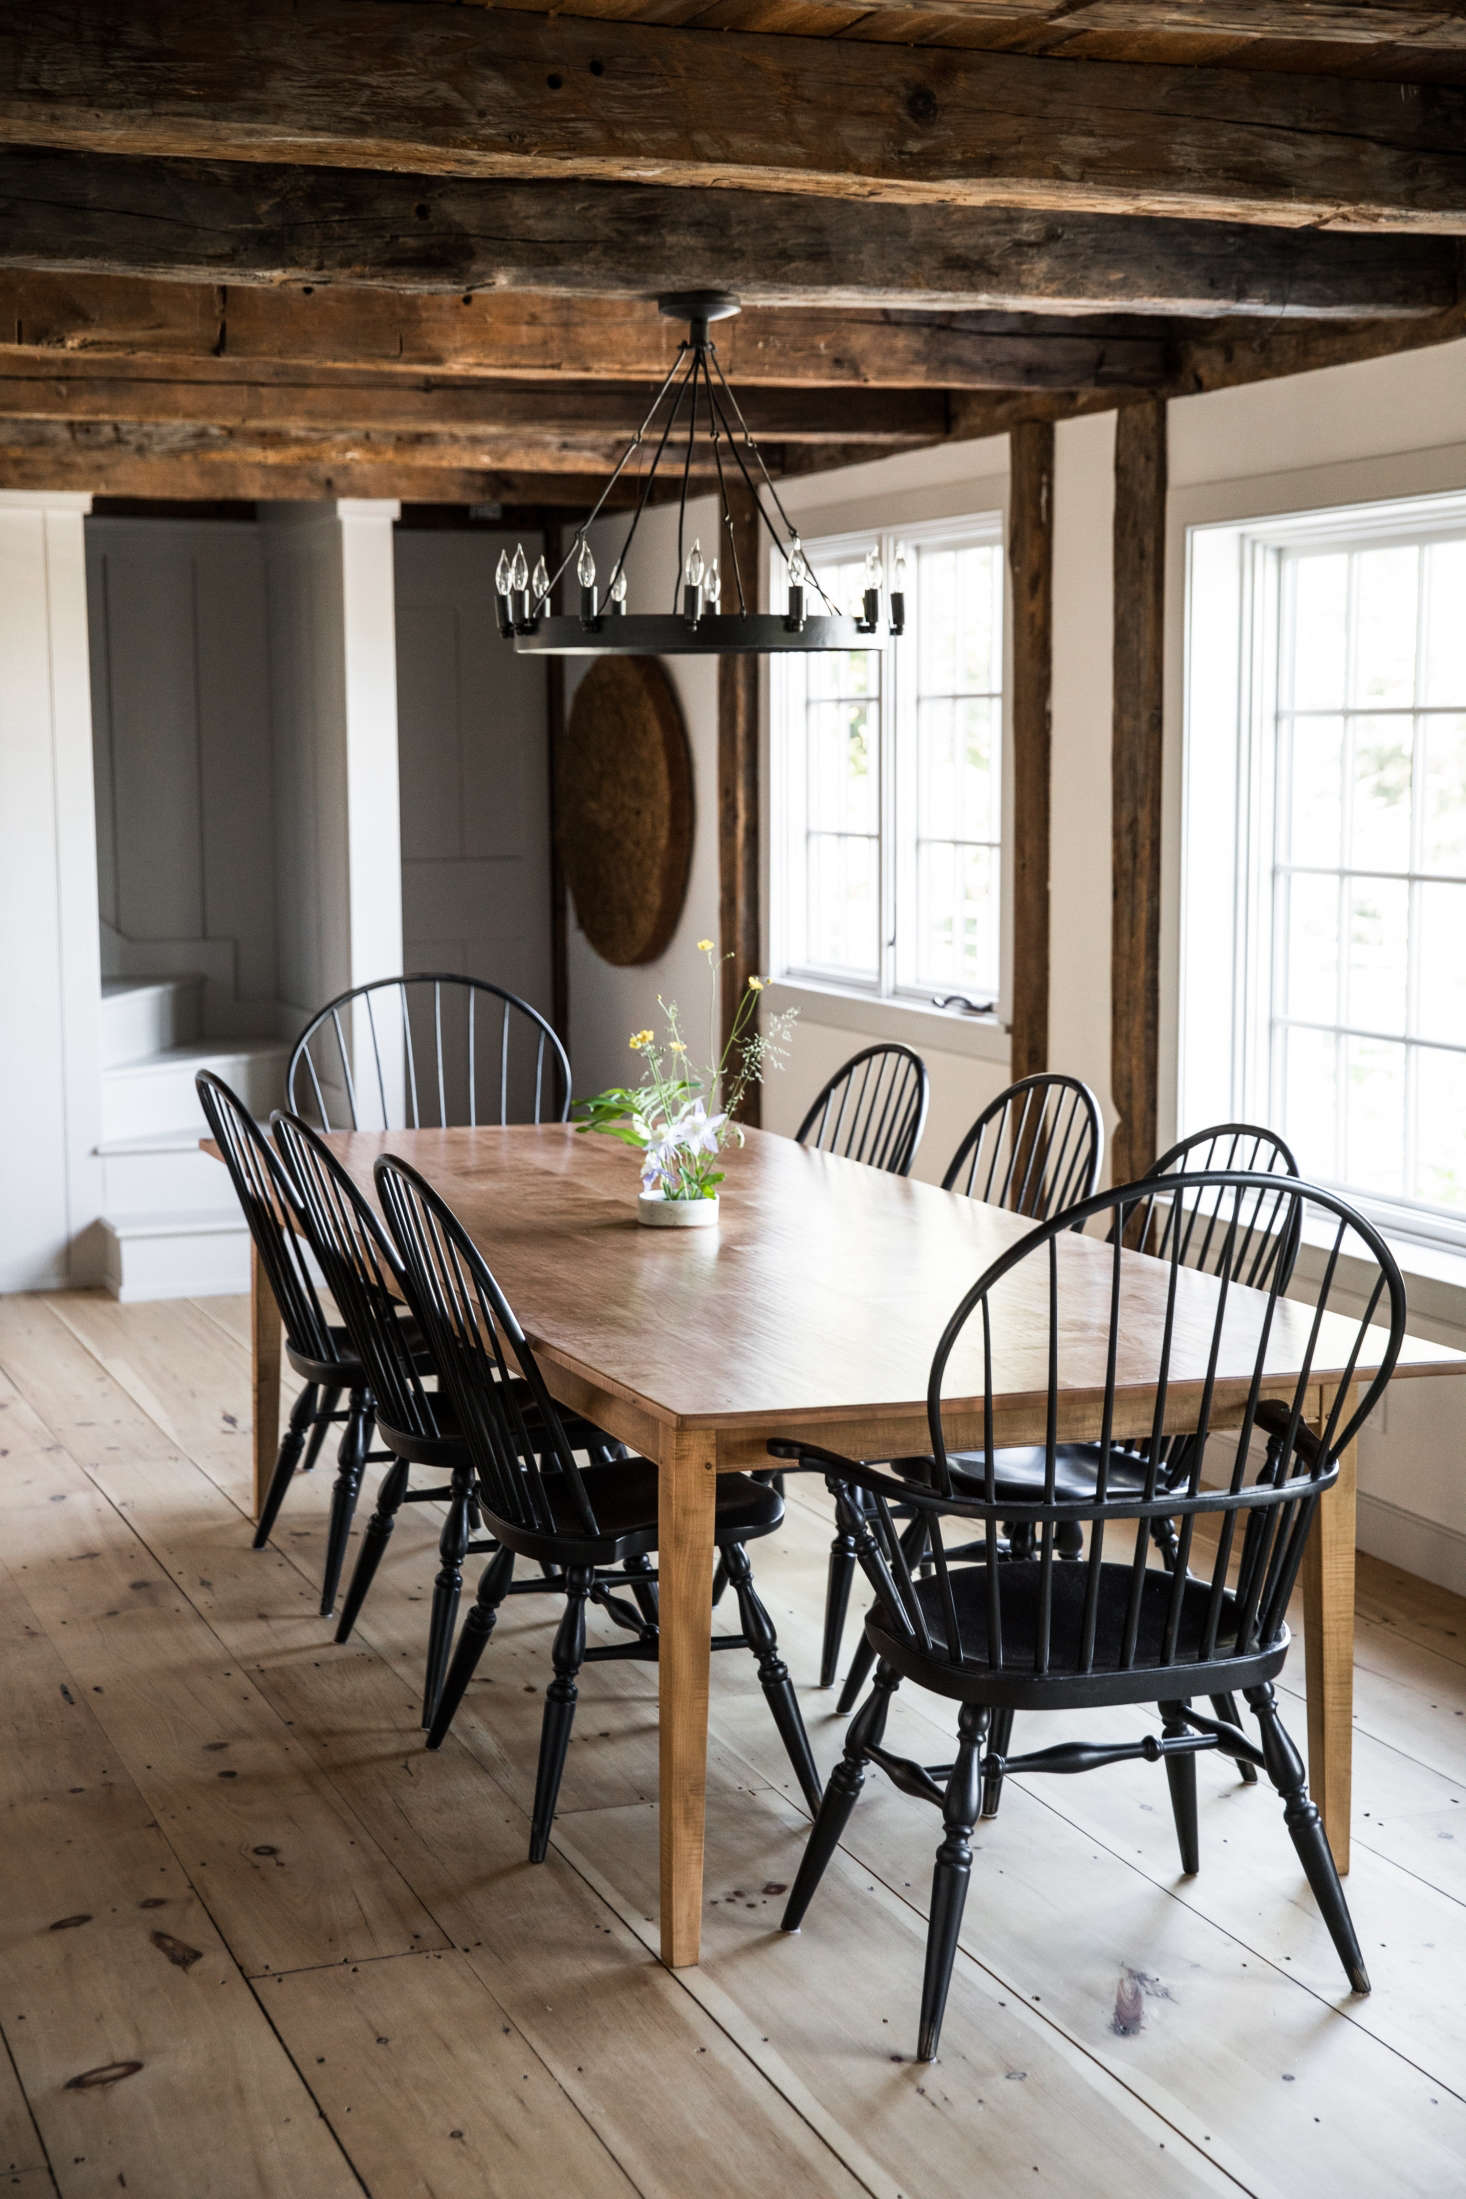 The dining room, with black spindle-back chairs and original wide-plank flooring.